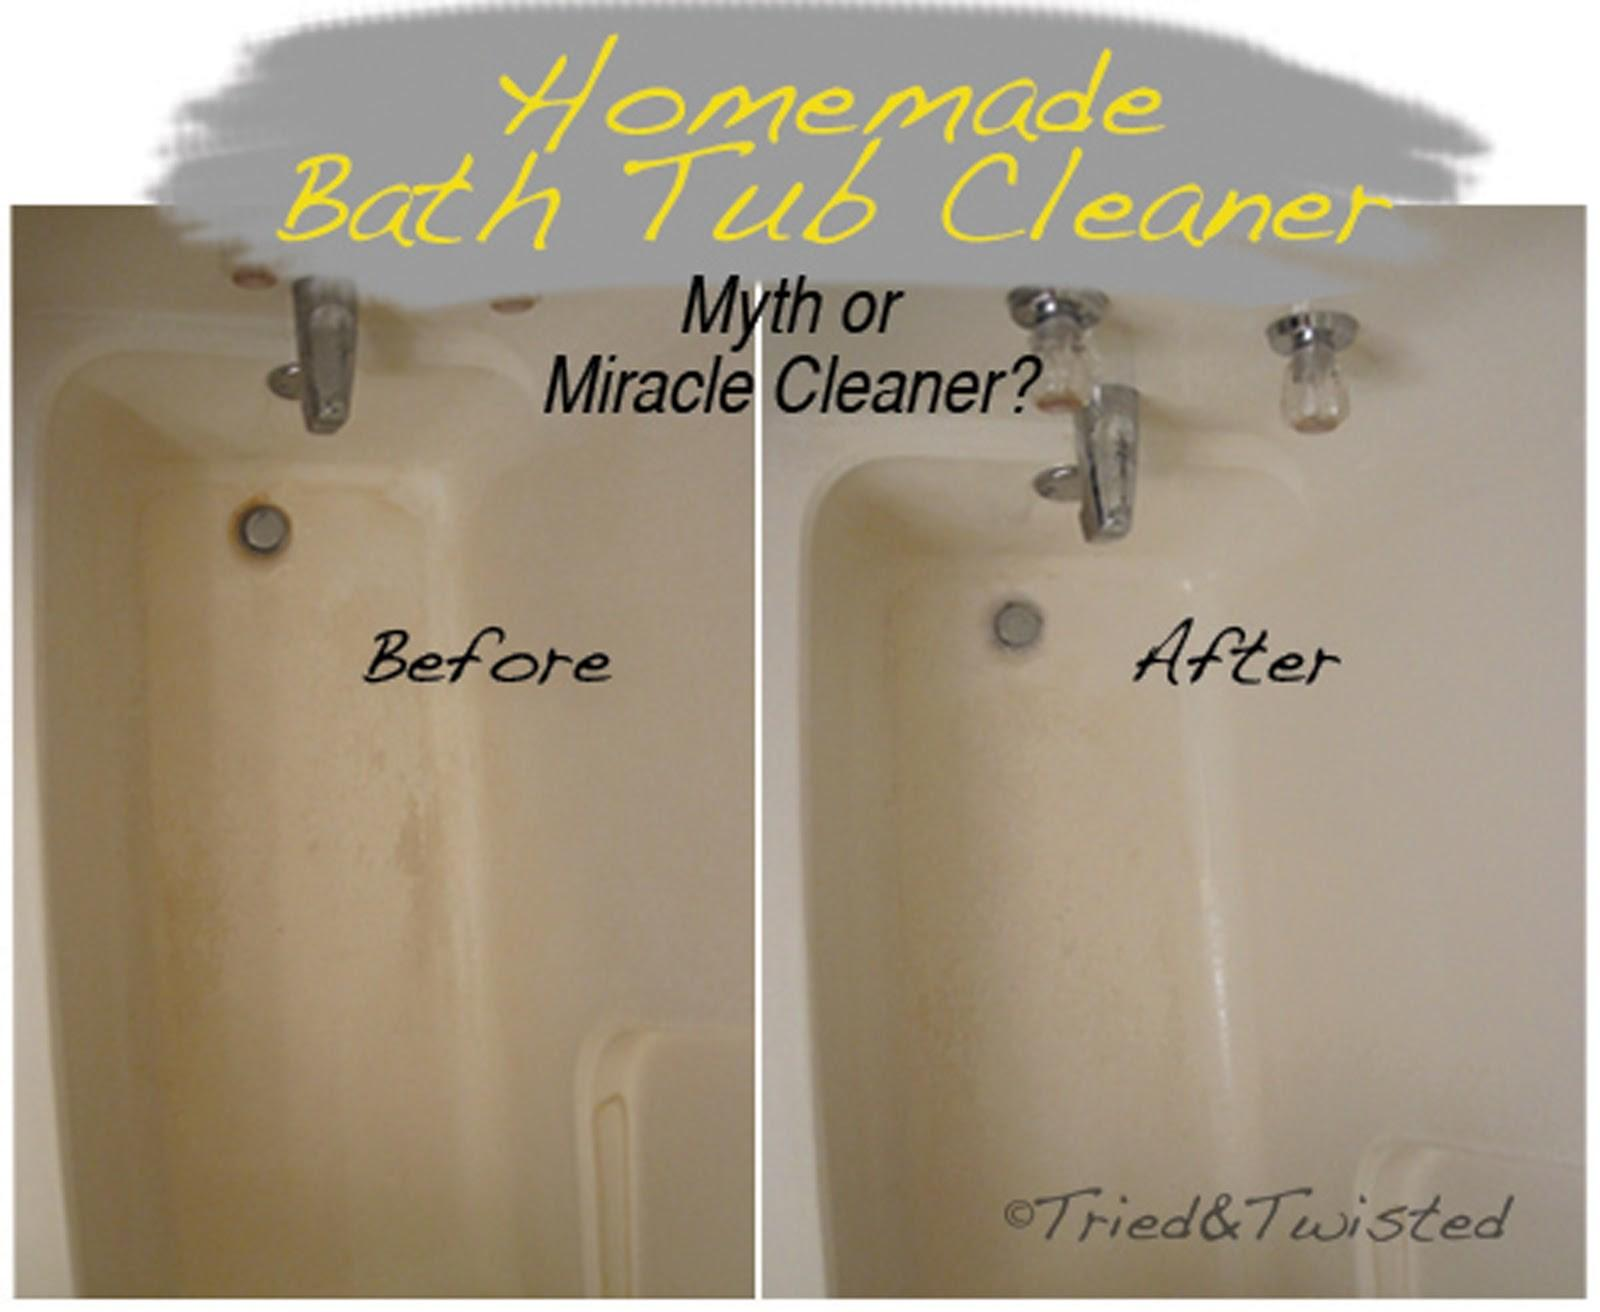 Tried Twisted Myth Miracle Cleaner Series Clean